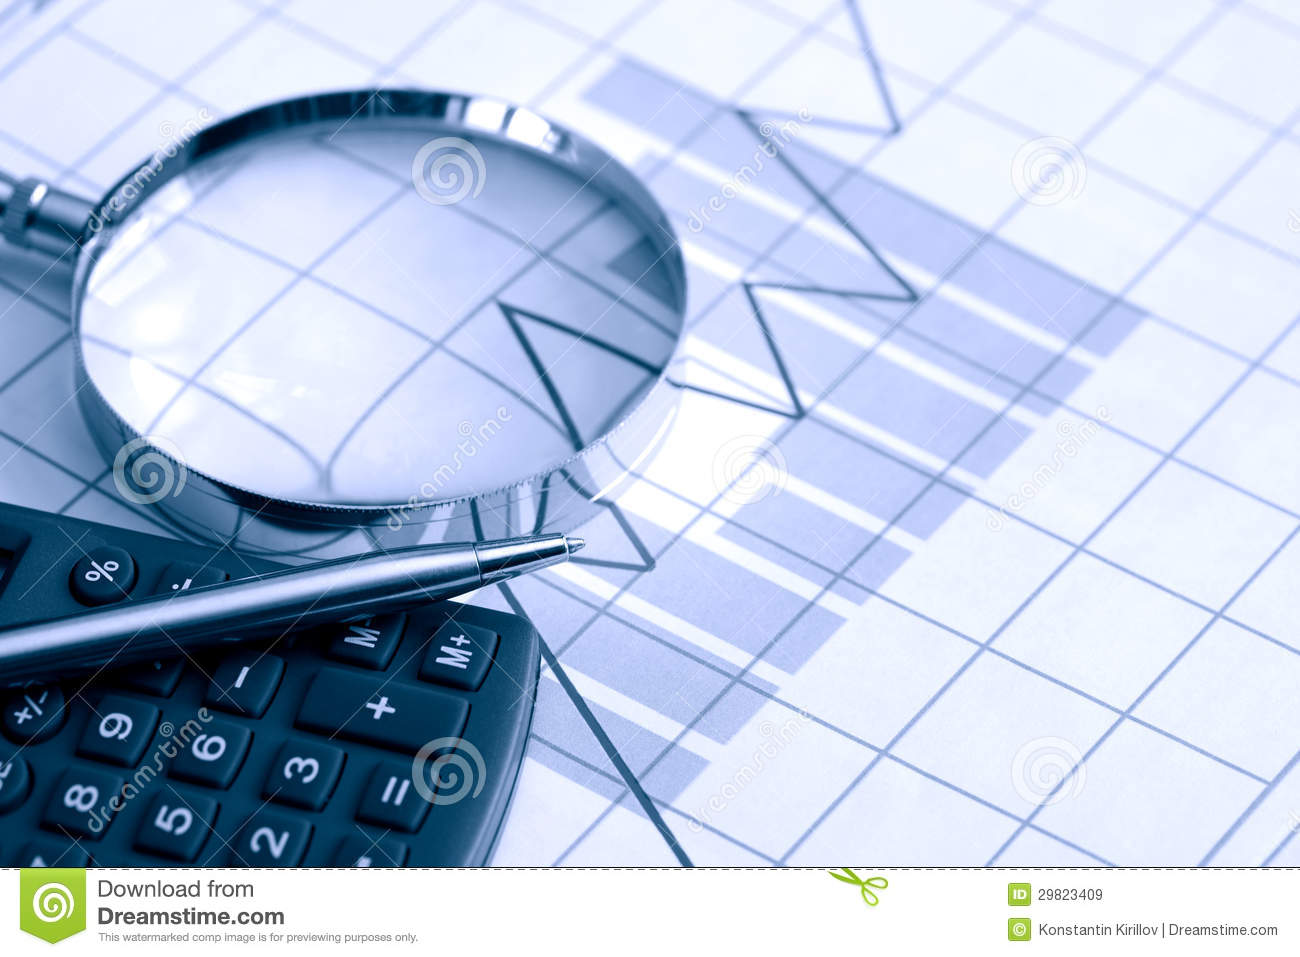 Business Research Royalty Free Stock Images Image  Business Concept Calculator Pen Near Magnifying Glass Paper Background Chart  Royalty Free Stock Images Business Concept Calculator Pen Near Magnifying Glass Paper Background Chart Image